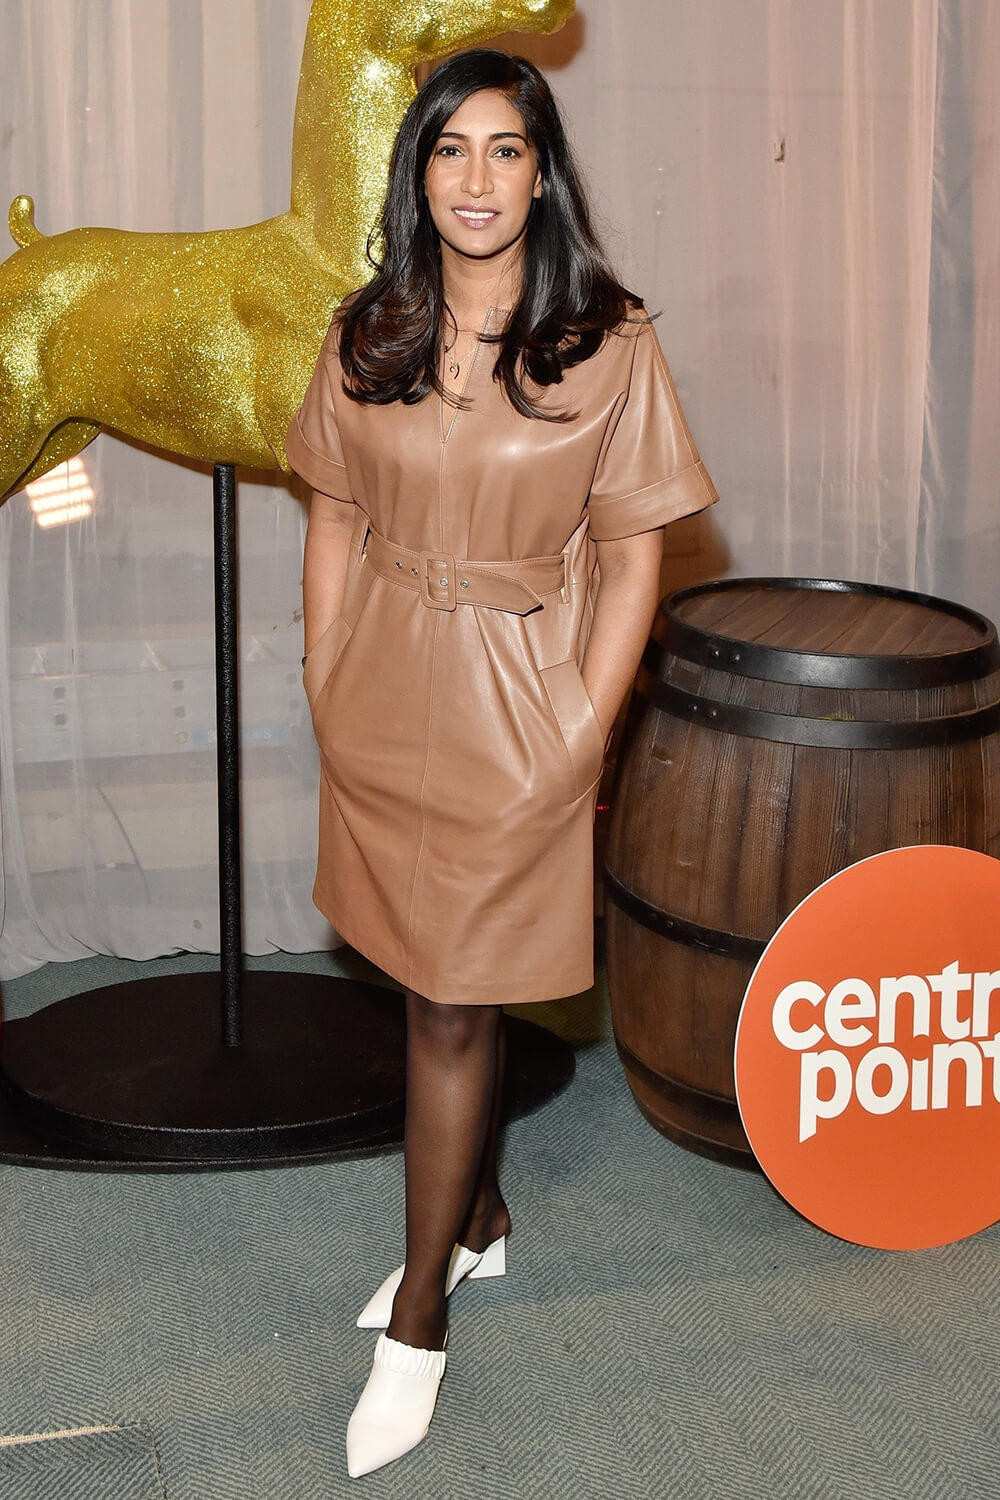 Tina Daheley attends Centrepoint's Ultimate Pub Quiz Event